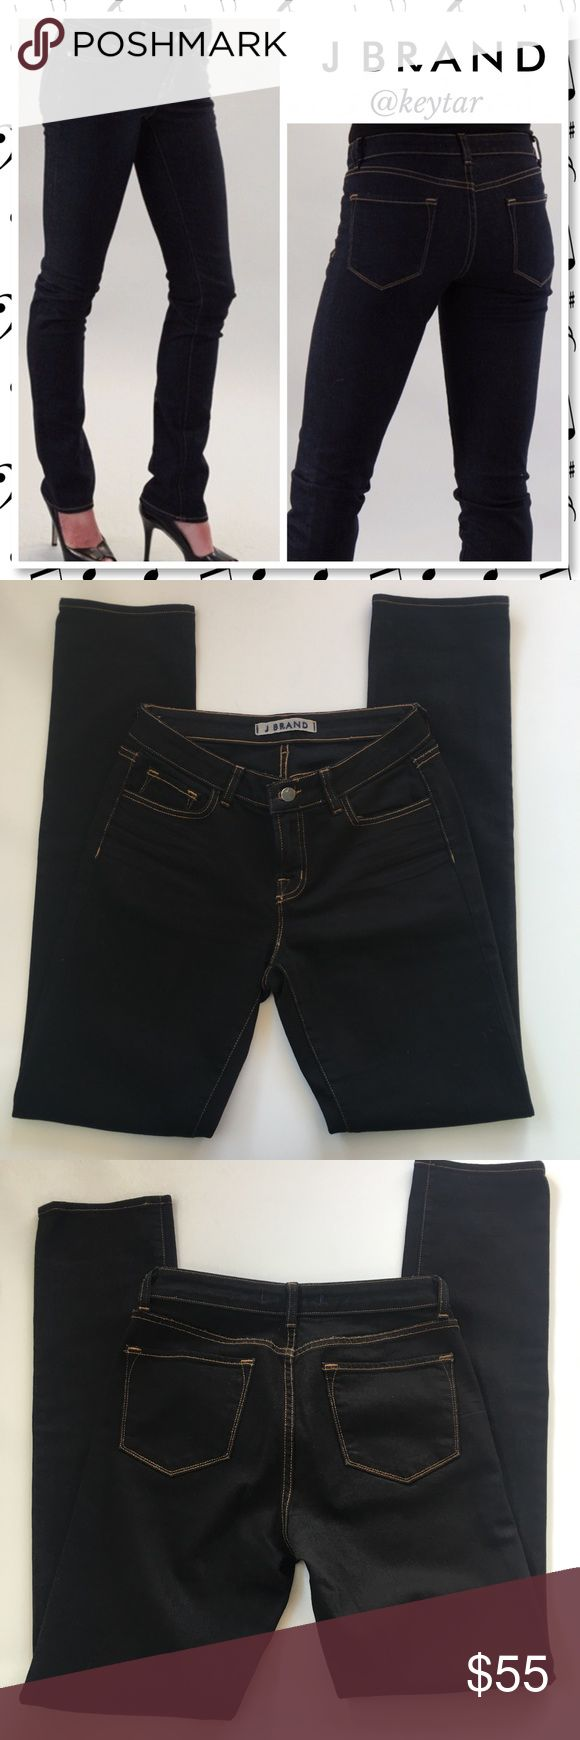 """J Brand Scarlett Cigarette Straight Leg Jeans The Scarlett is an ink black wash cigarette style jean by J Brand. 5 pocket straight leg jeans, contrasting gold stitching with zip fly and button closure. EUC. Only signs of wear are on the inside tags and pocket fabric which have turned grayish from the first wash and color bleed. Easy to dress up with heels or booties or down with sneakers or sandals.  ⚡Waist 15"""" inseam 33"""" rise 8"""" ❌ trades ❌ lowballs 👍offer button  🌟Bundle 2 or more items…"""